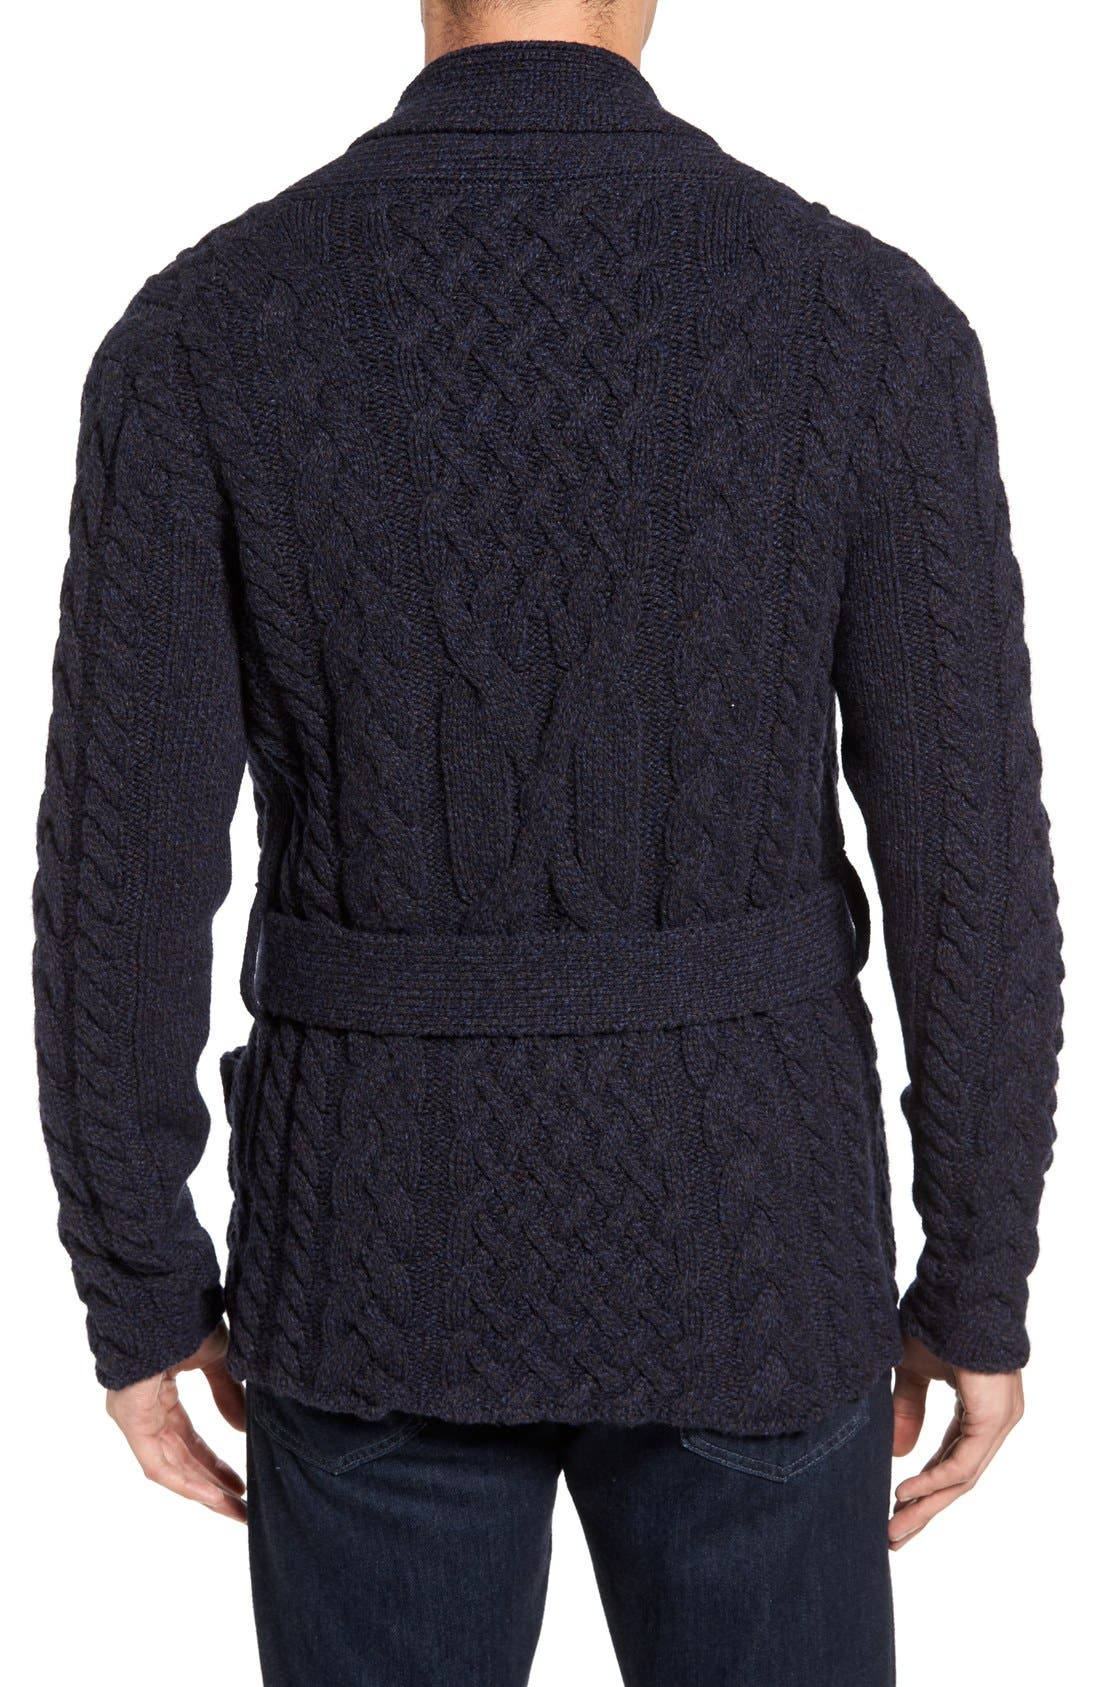 EIDOS,                             Napoli Cable Knit Wool Cardigan,                             Alternate thumbnail 8, color,                             405